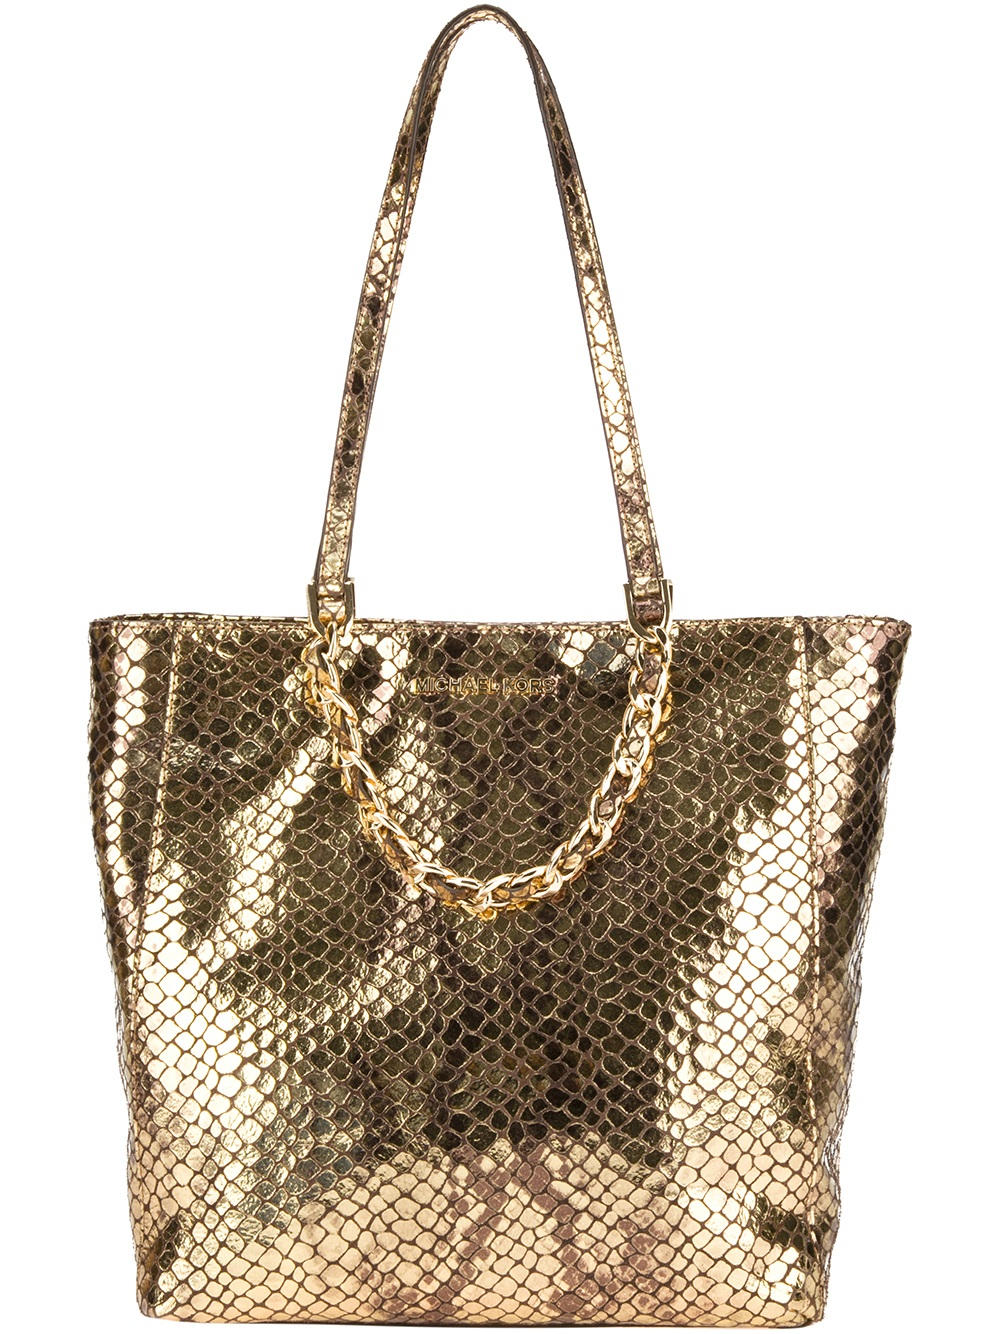 d7a69b58d89f australia michael kors harper medium convertible satchel 5fbb1 24d68  low  cost michael michael kors harper shopper tote in metallic lyst e6a3e 28235